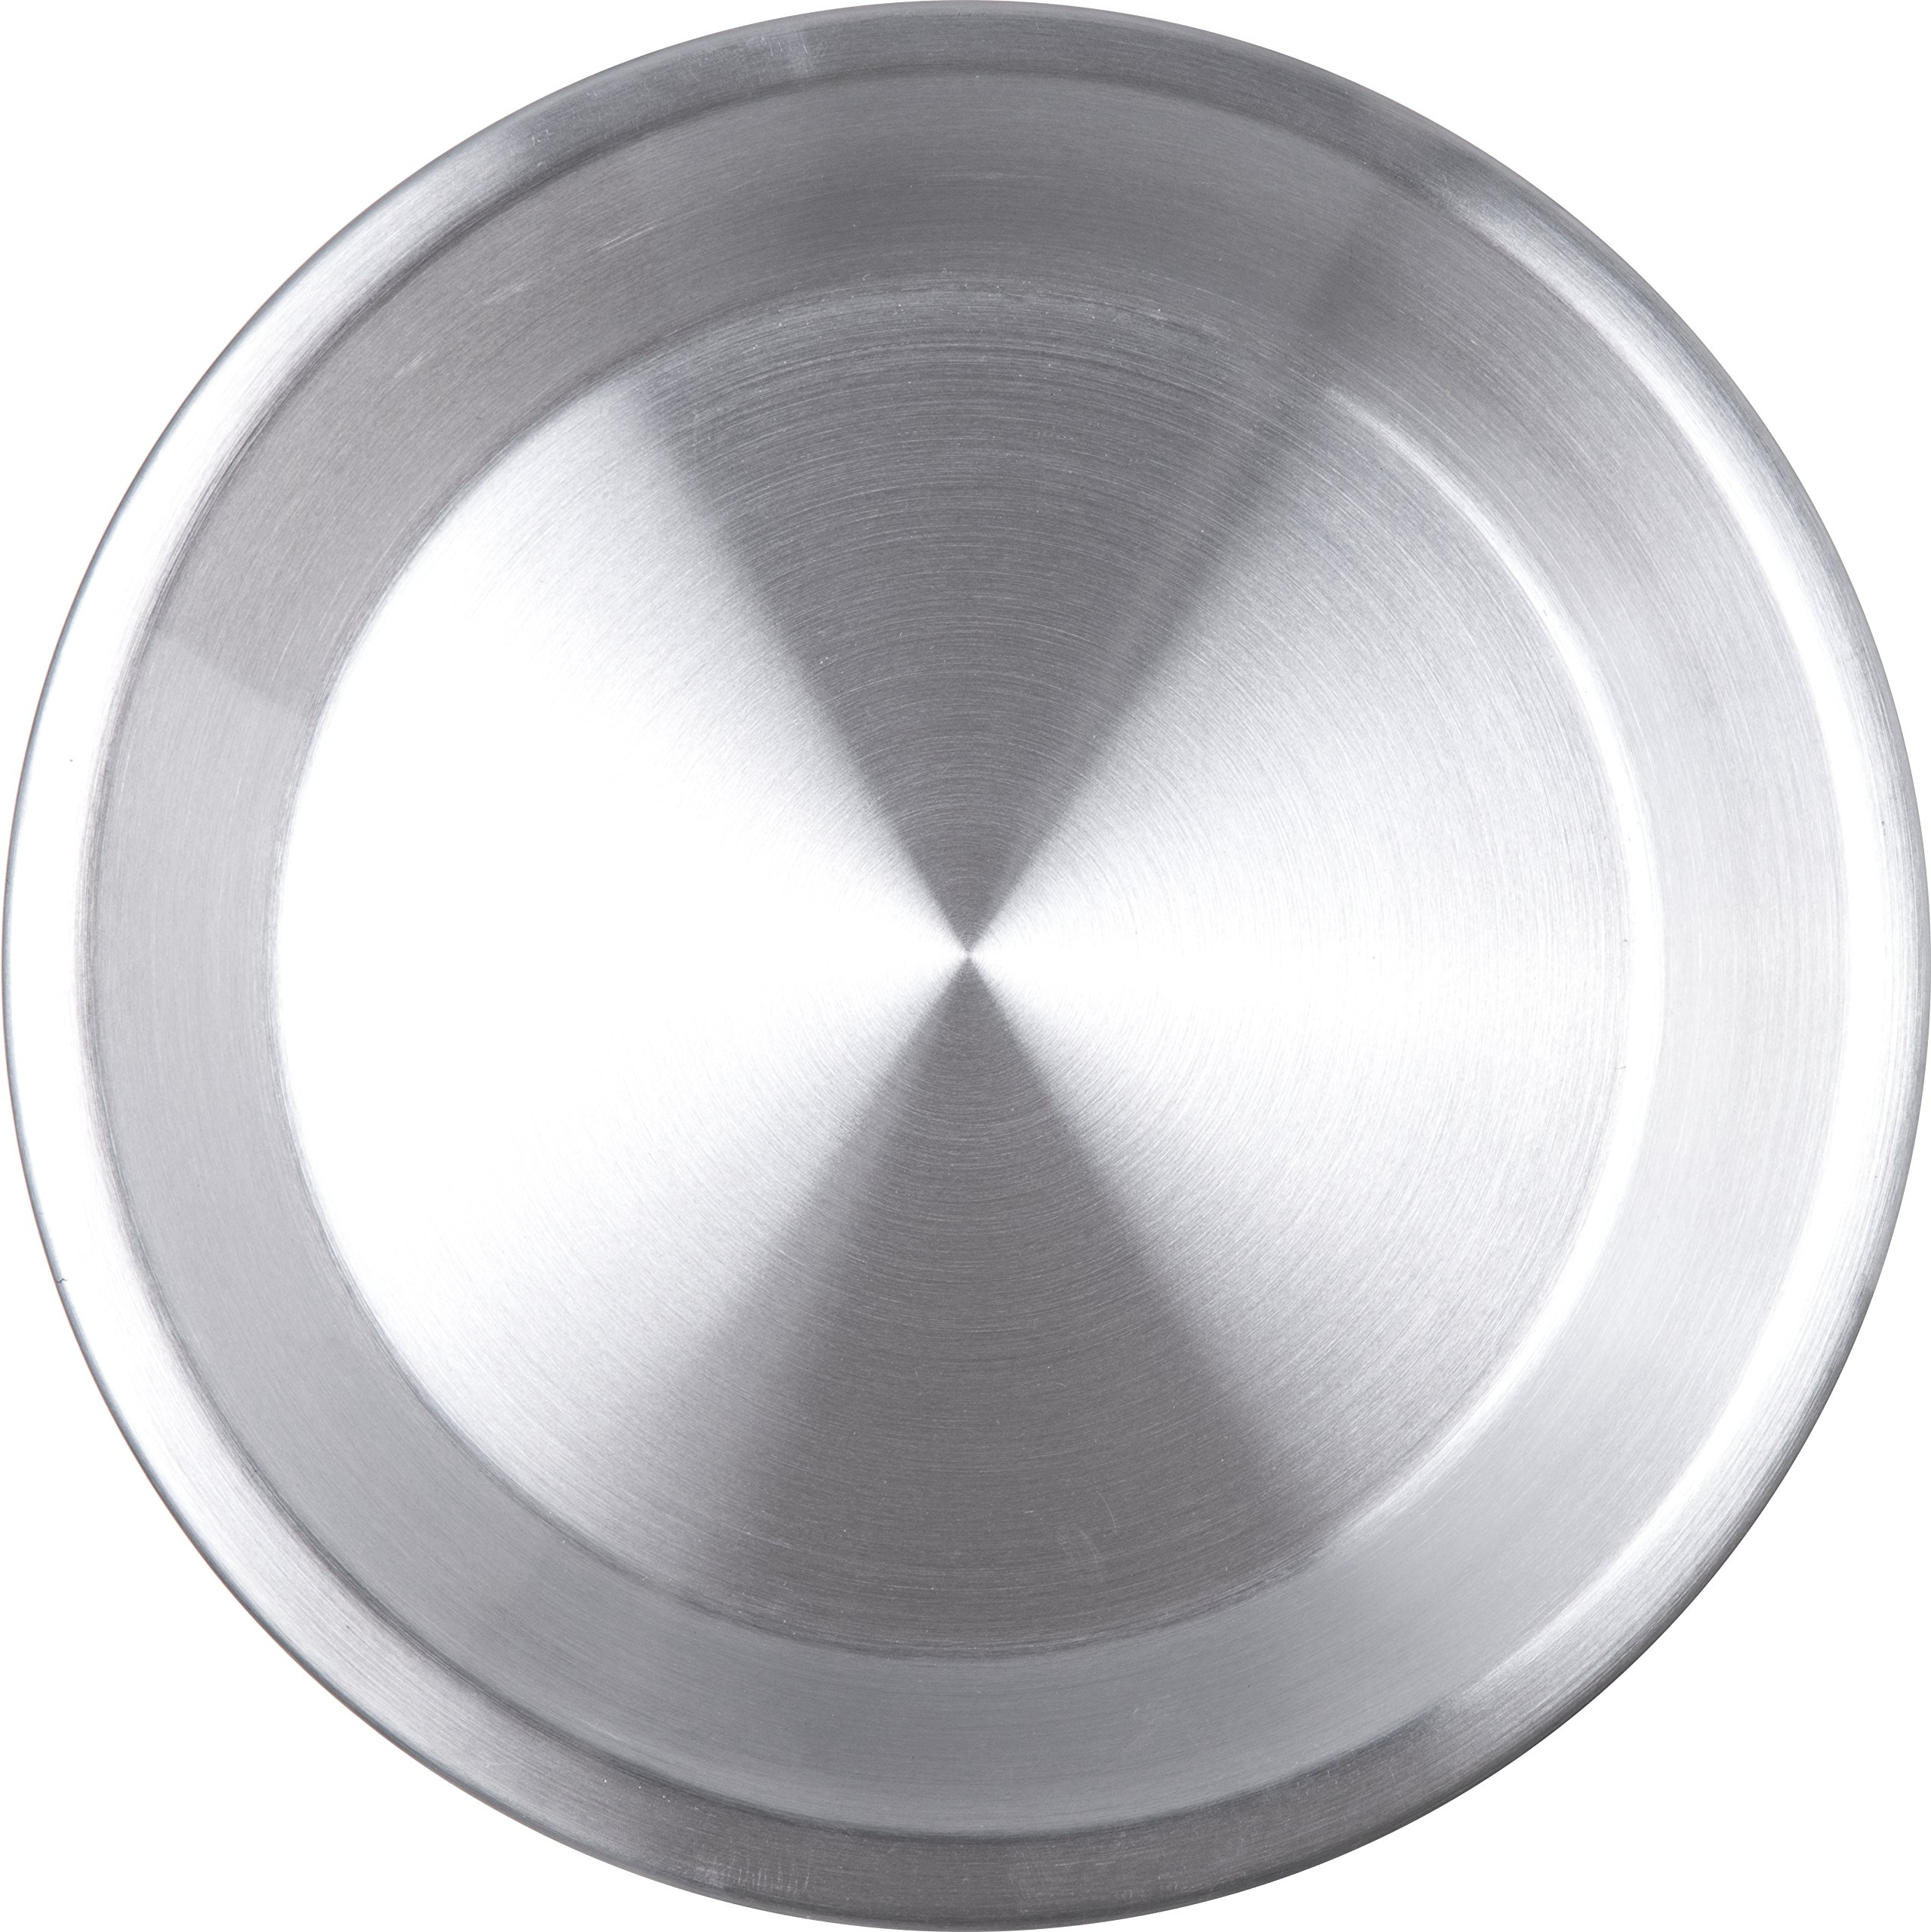 Carlisle 60322 Pie Pan, 9'', Aluminum (Pack of 24) by Carlisle (Image #2)